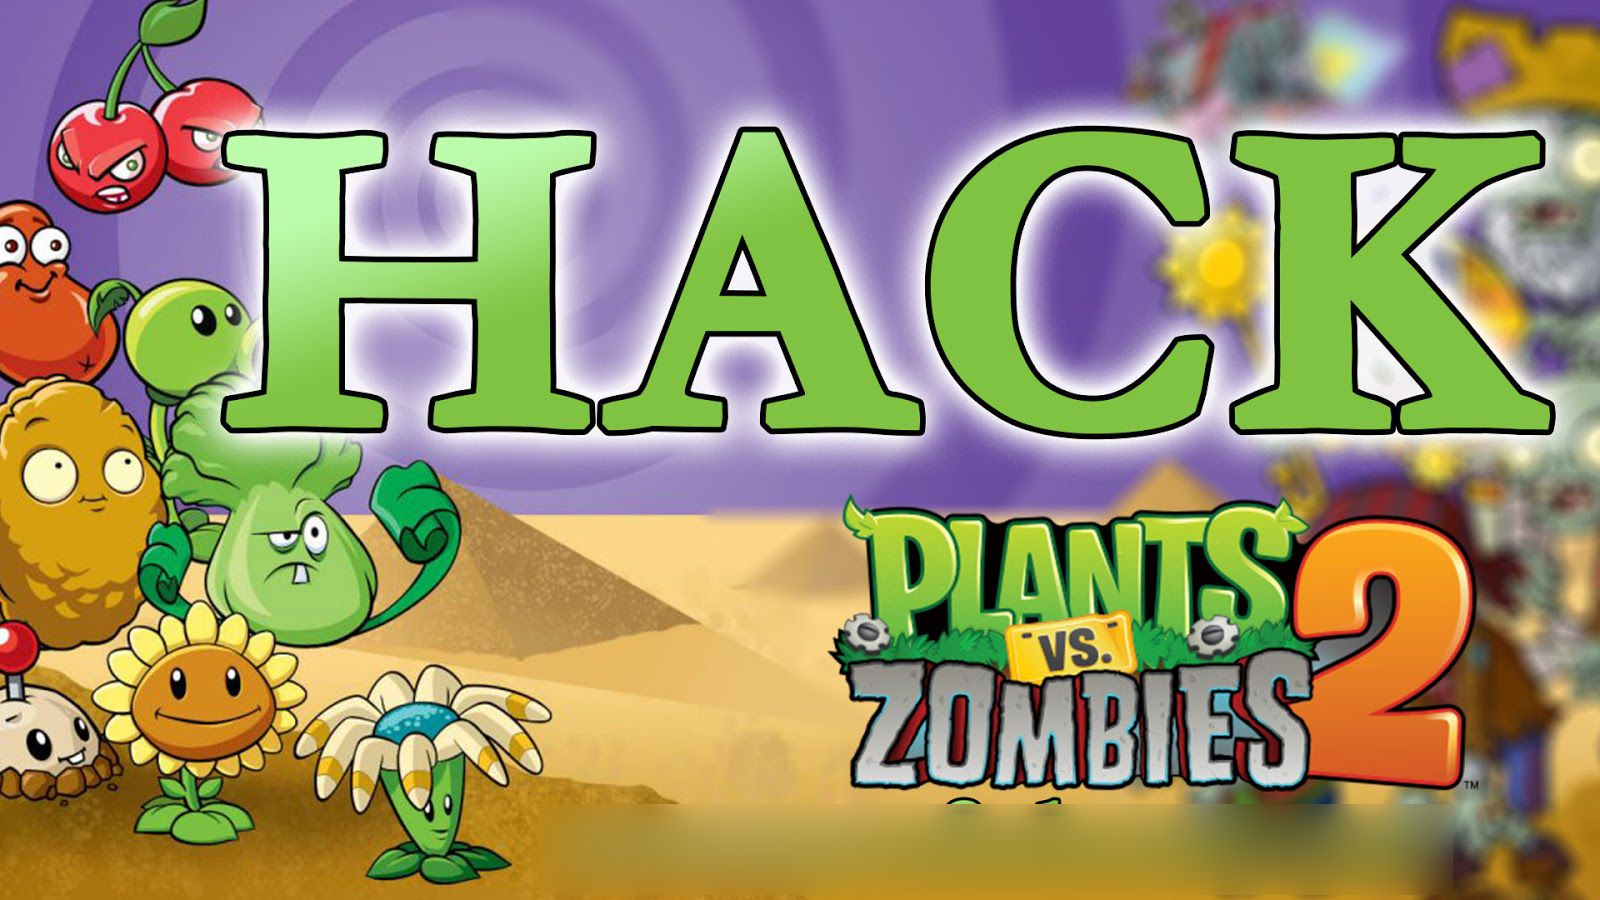 Plants Vs Zombies 2 Hack Online How To Get Unlimited Free Gems And Coins For Android And Ios Plants Vs Zombies 2 Hack Cheating Ios Games Plants Vs Zombies